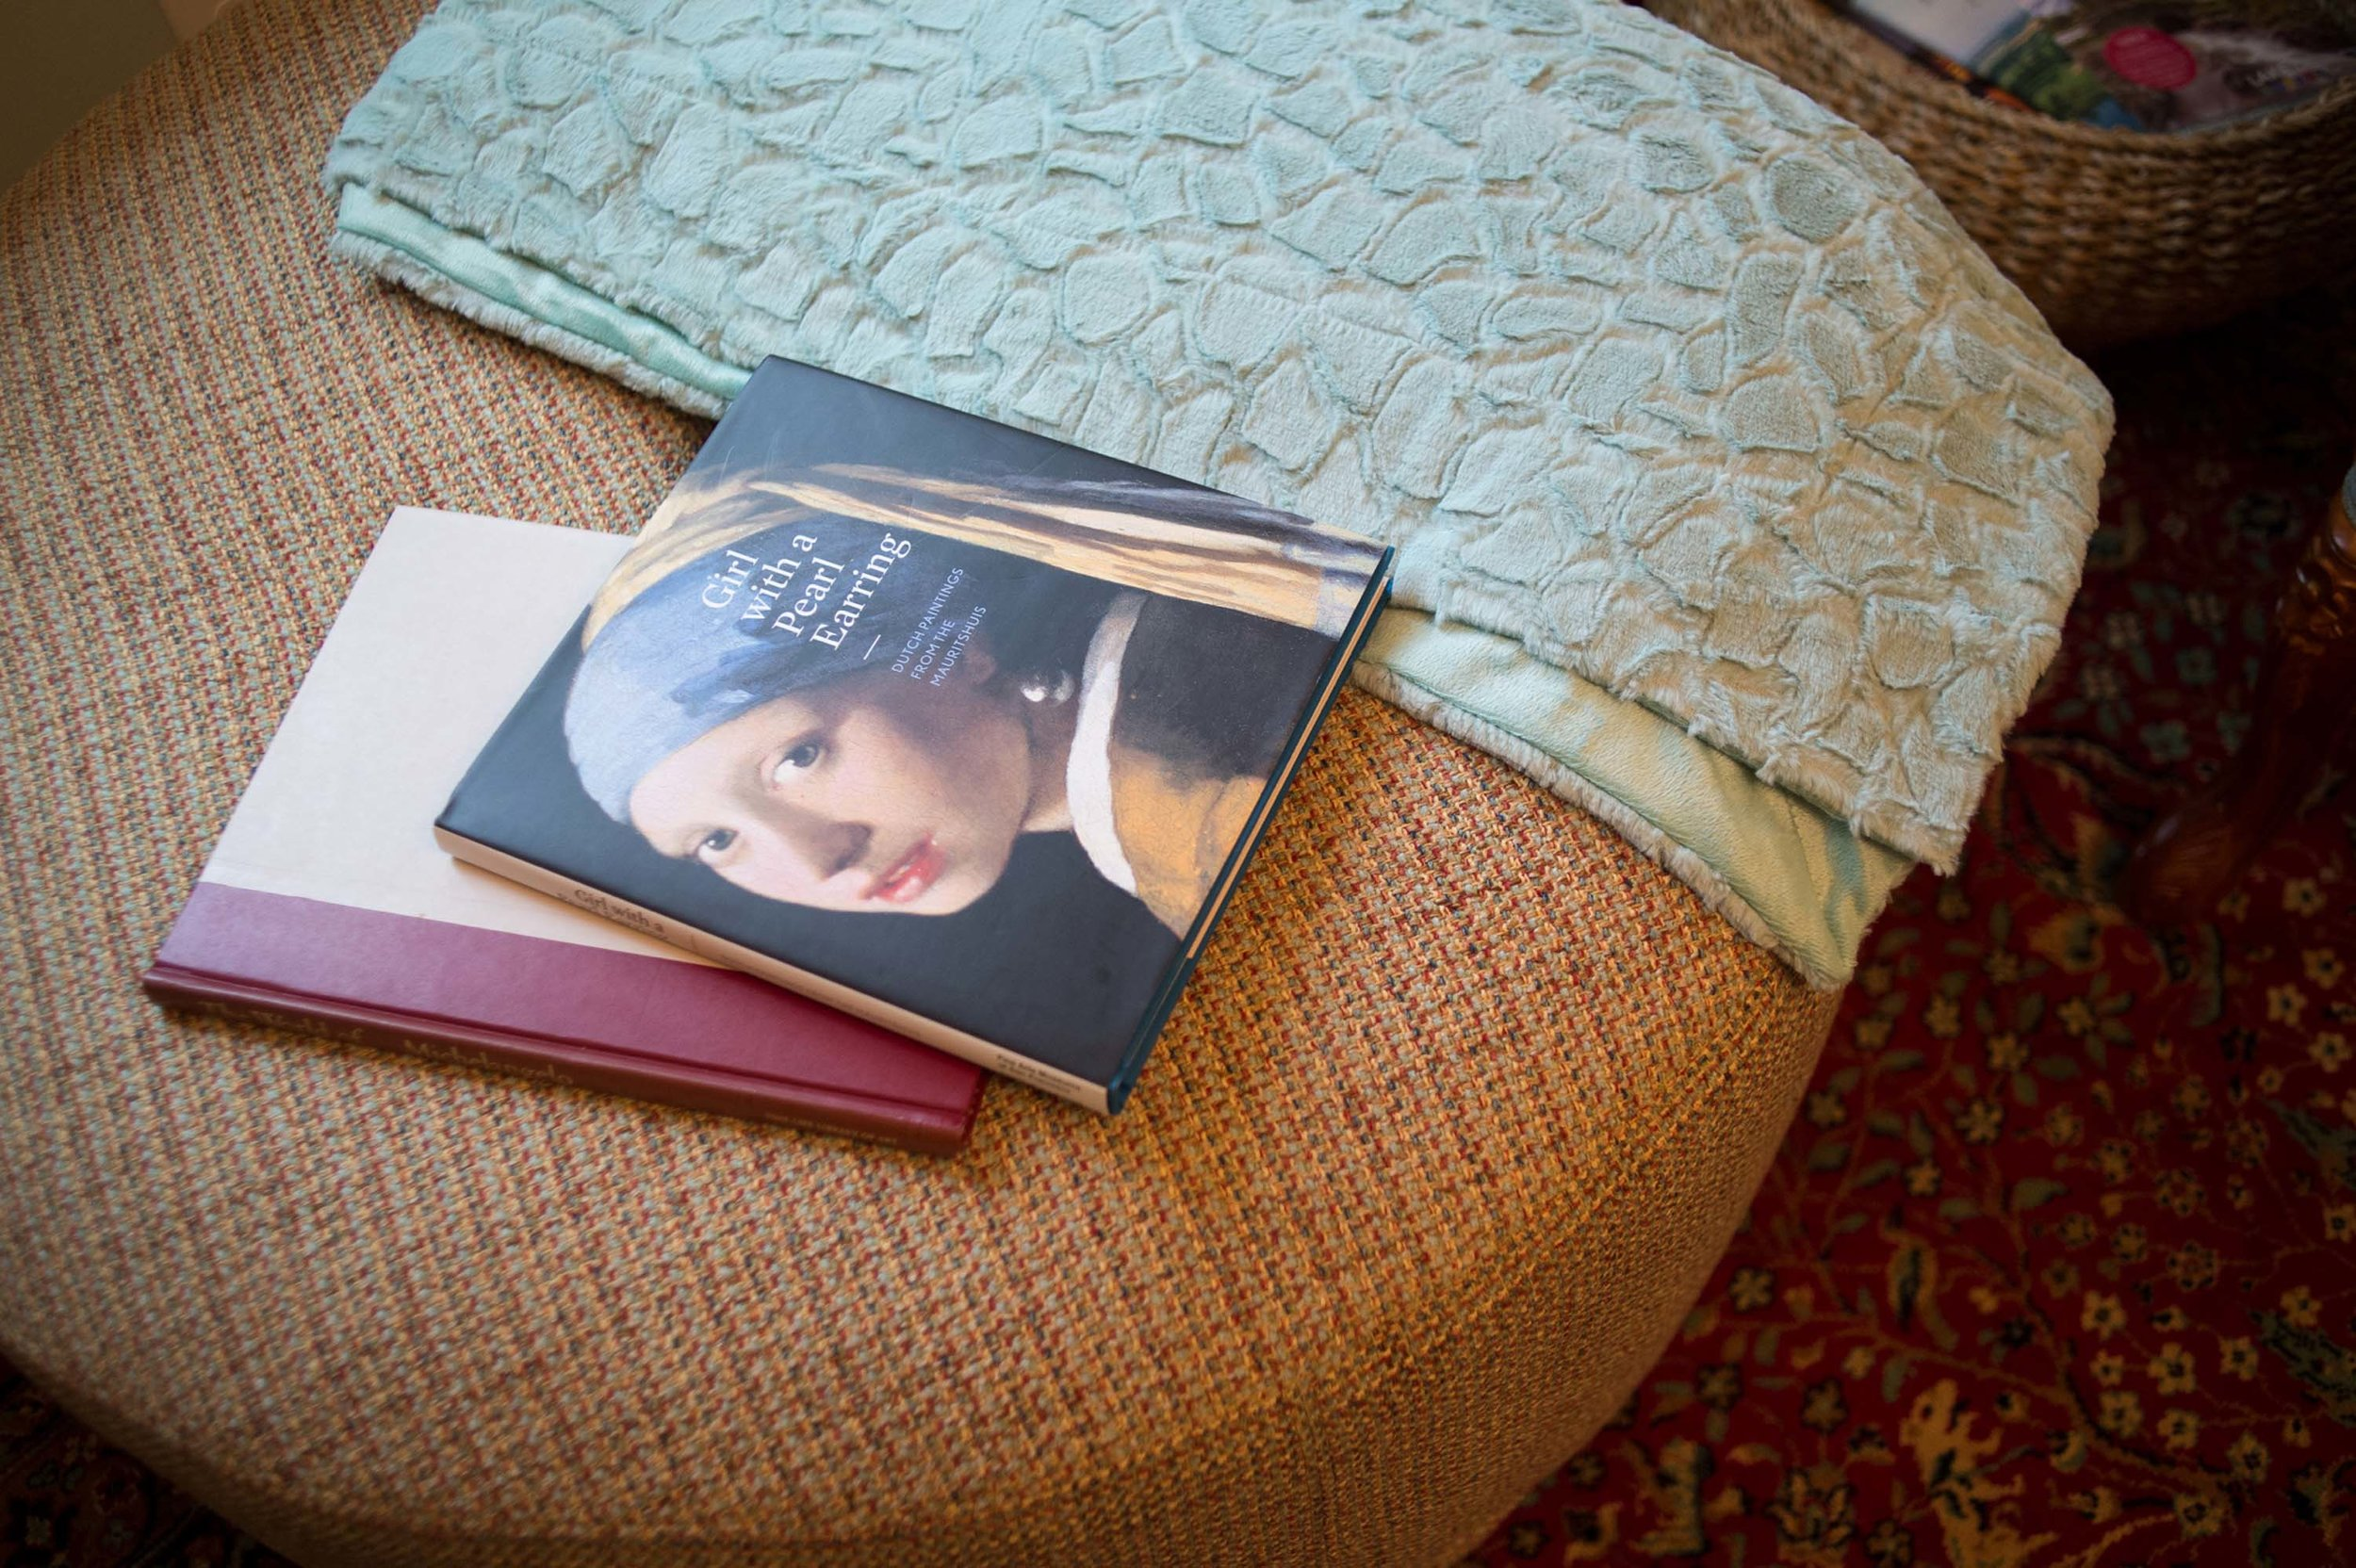 Ottoman Accessories to include books and Blanket